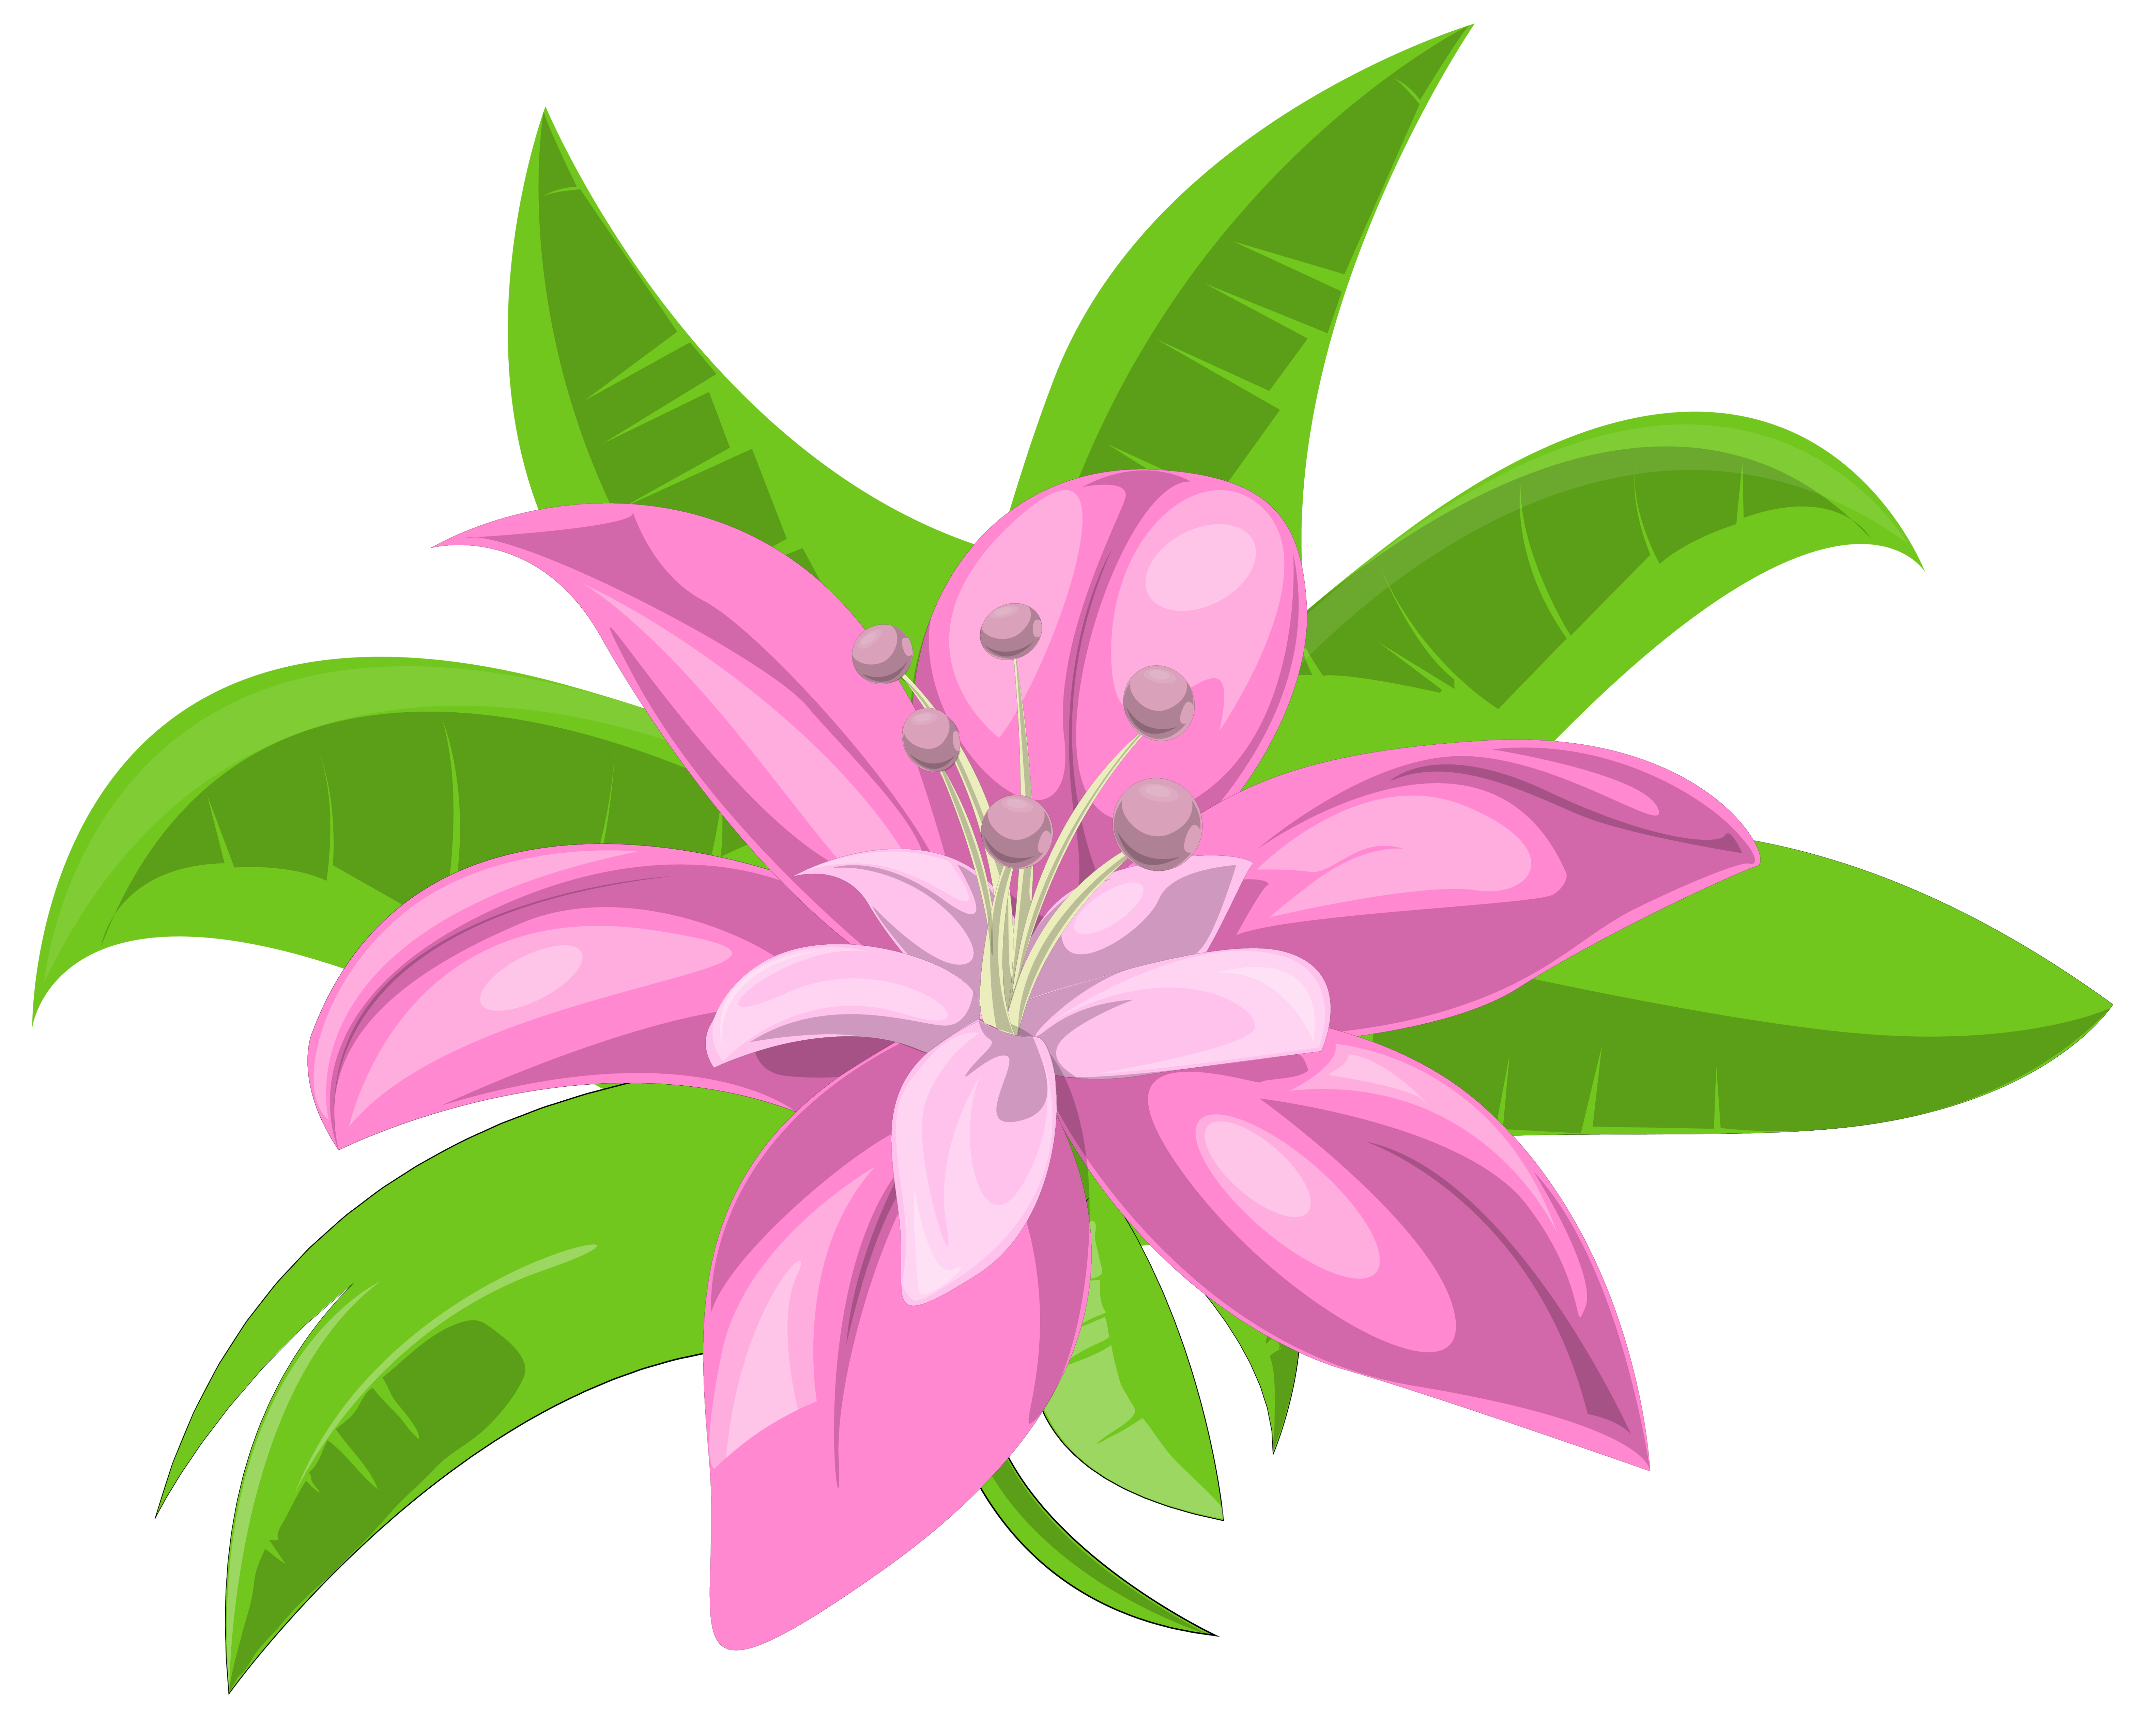 Pink Exotic Flower PNG Image.